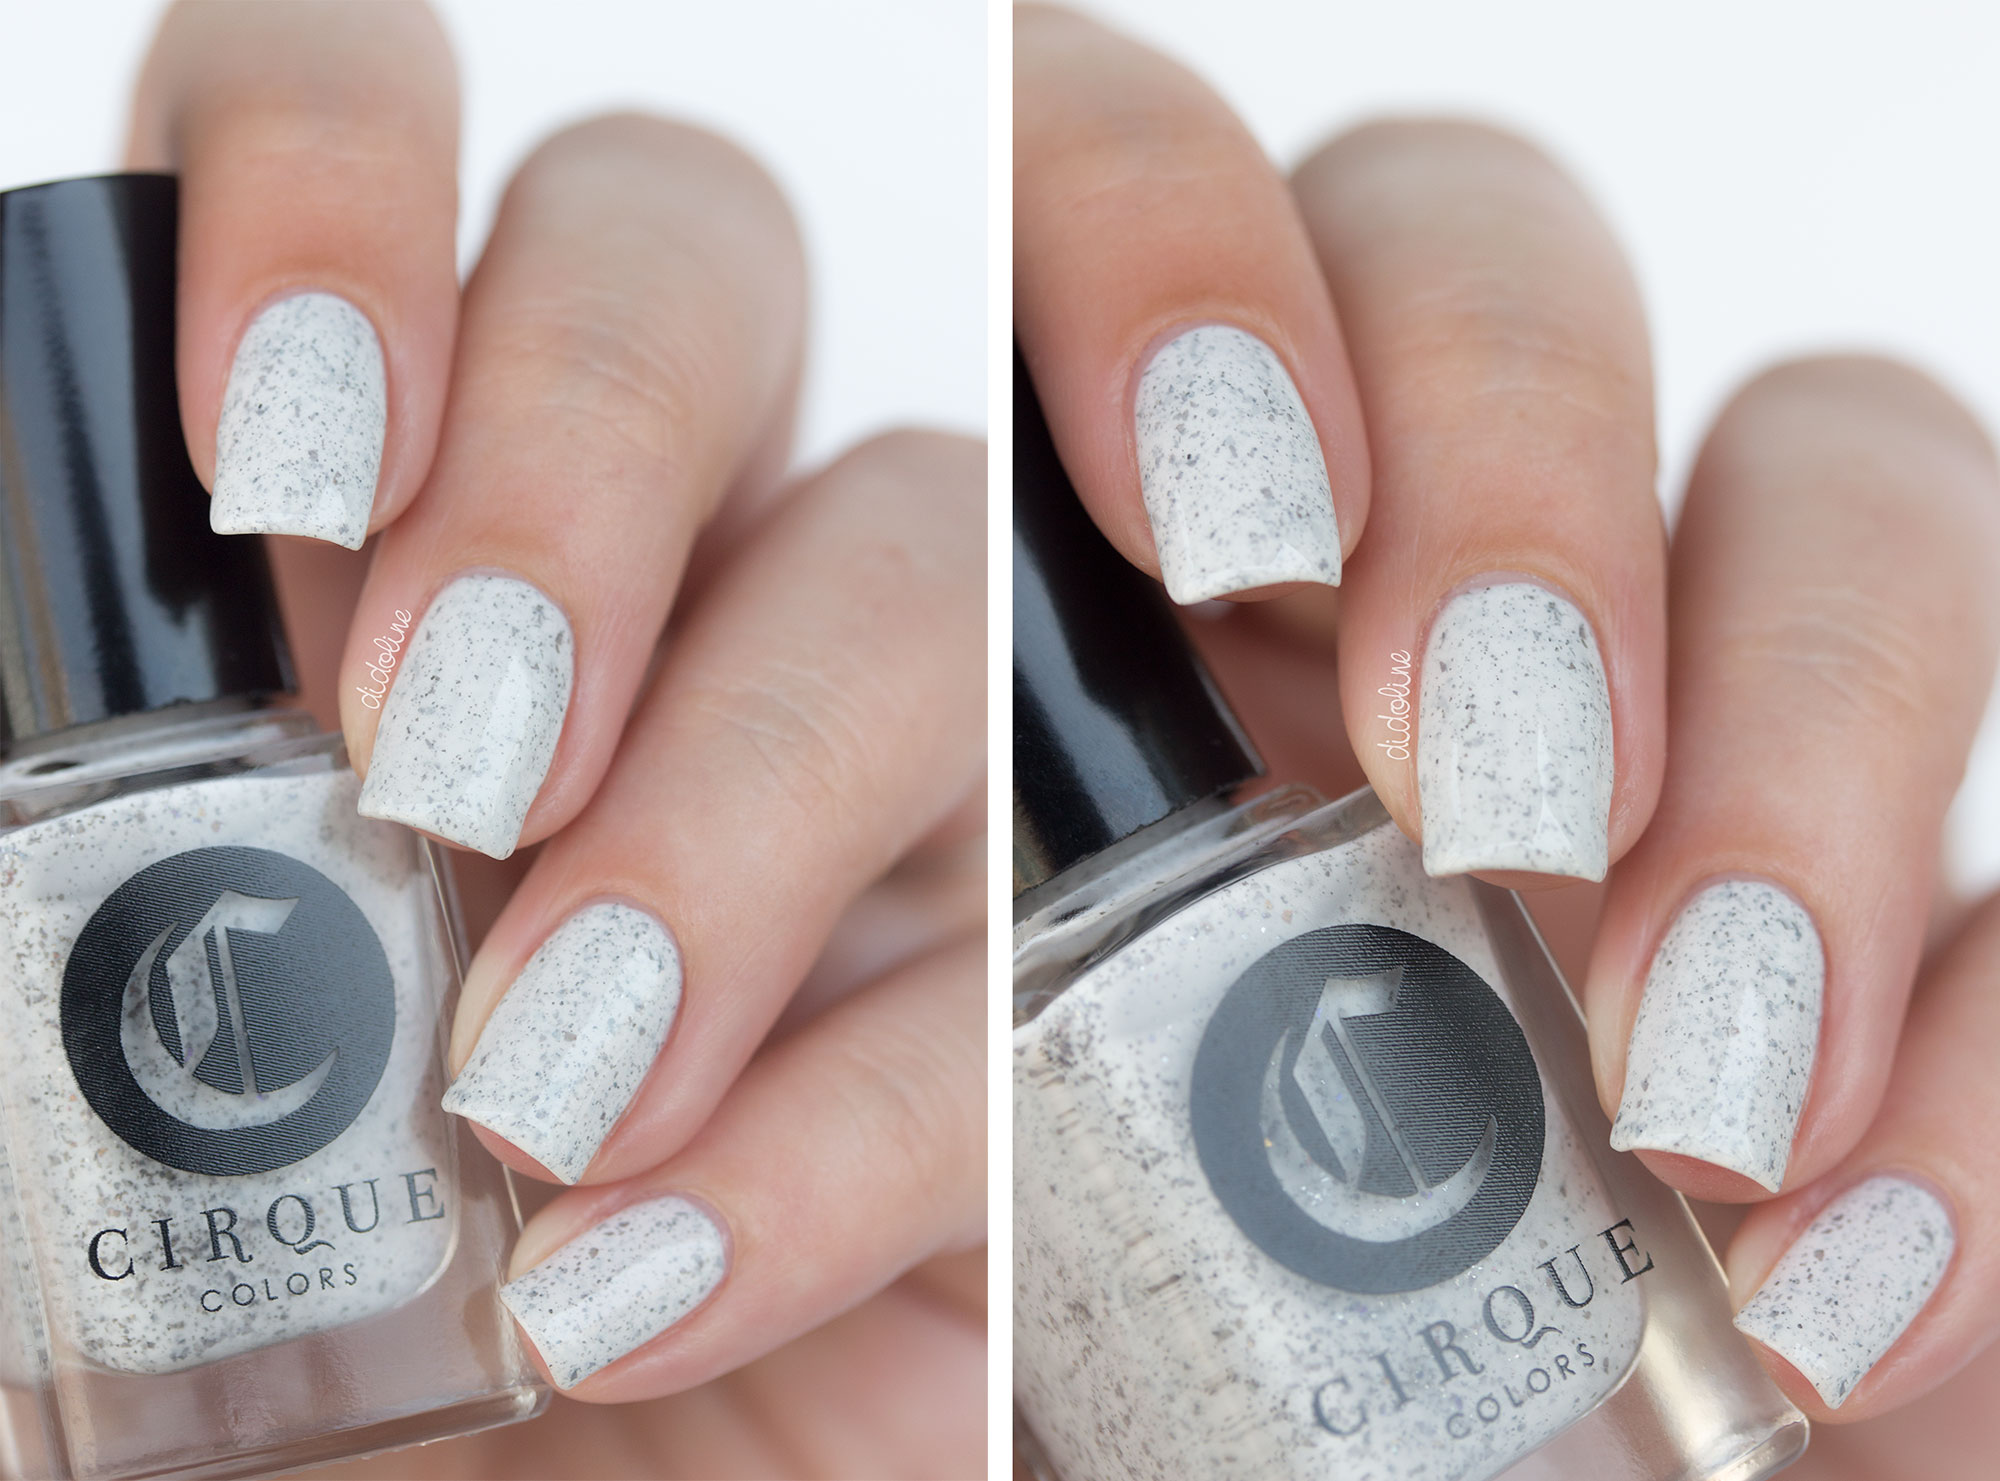 Cirque Colors - Hatch